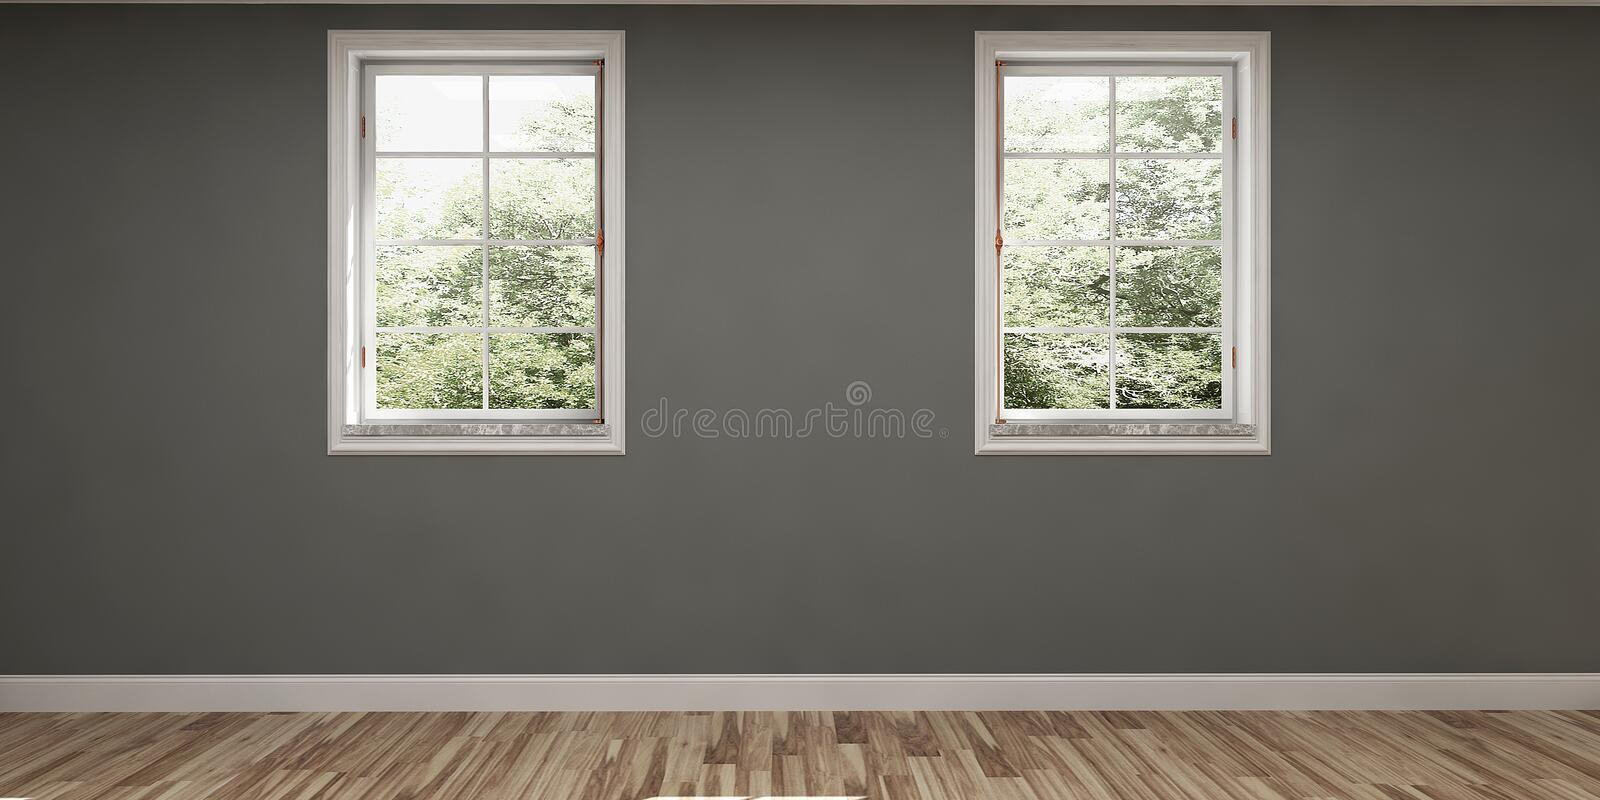 Empty room with grey walls and two windows. Empty room with grey walls and two windows and wooden floor royalty free stock image